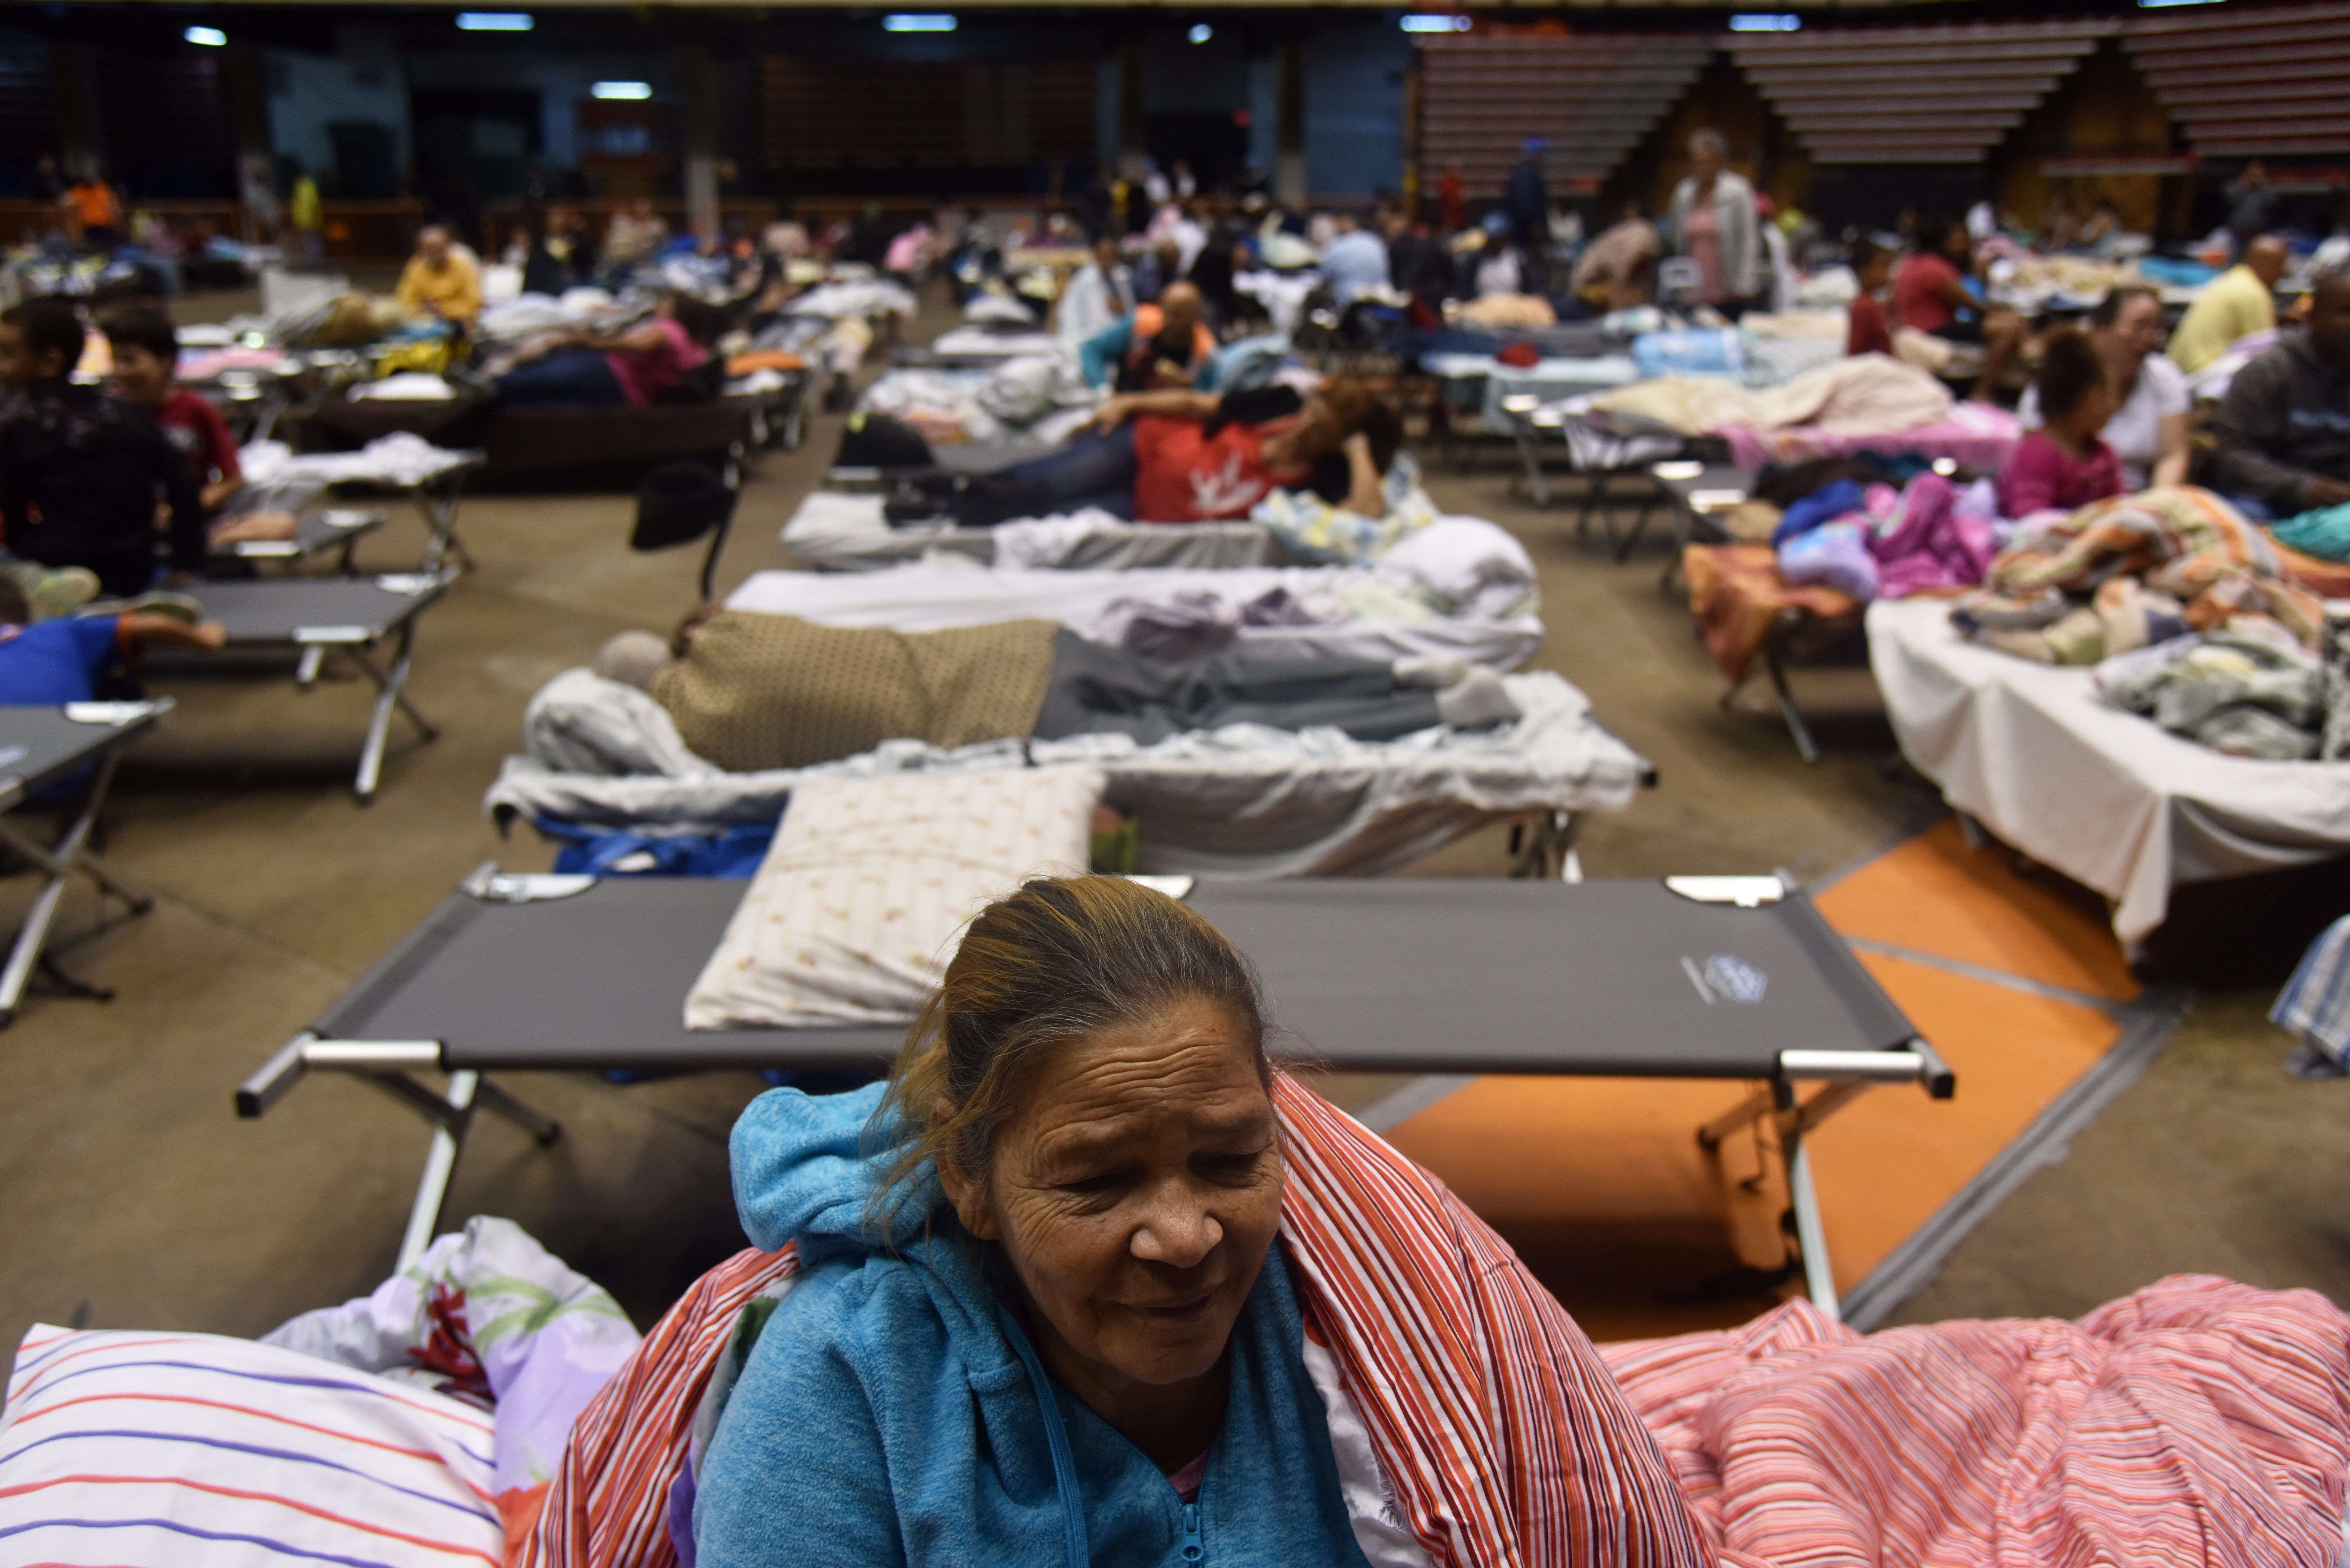 Librada is seen at the Roberto Clemente Coliseum refuge in San Juan, Puerto Rico, on September 19, 2017, prior the arrival of Hurricane Maria.